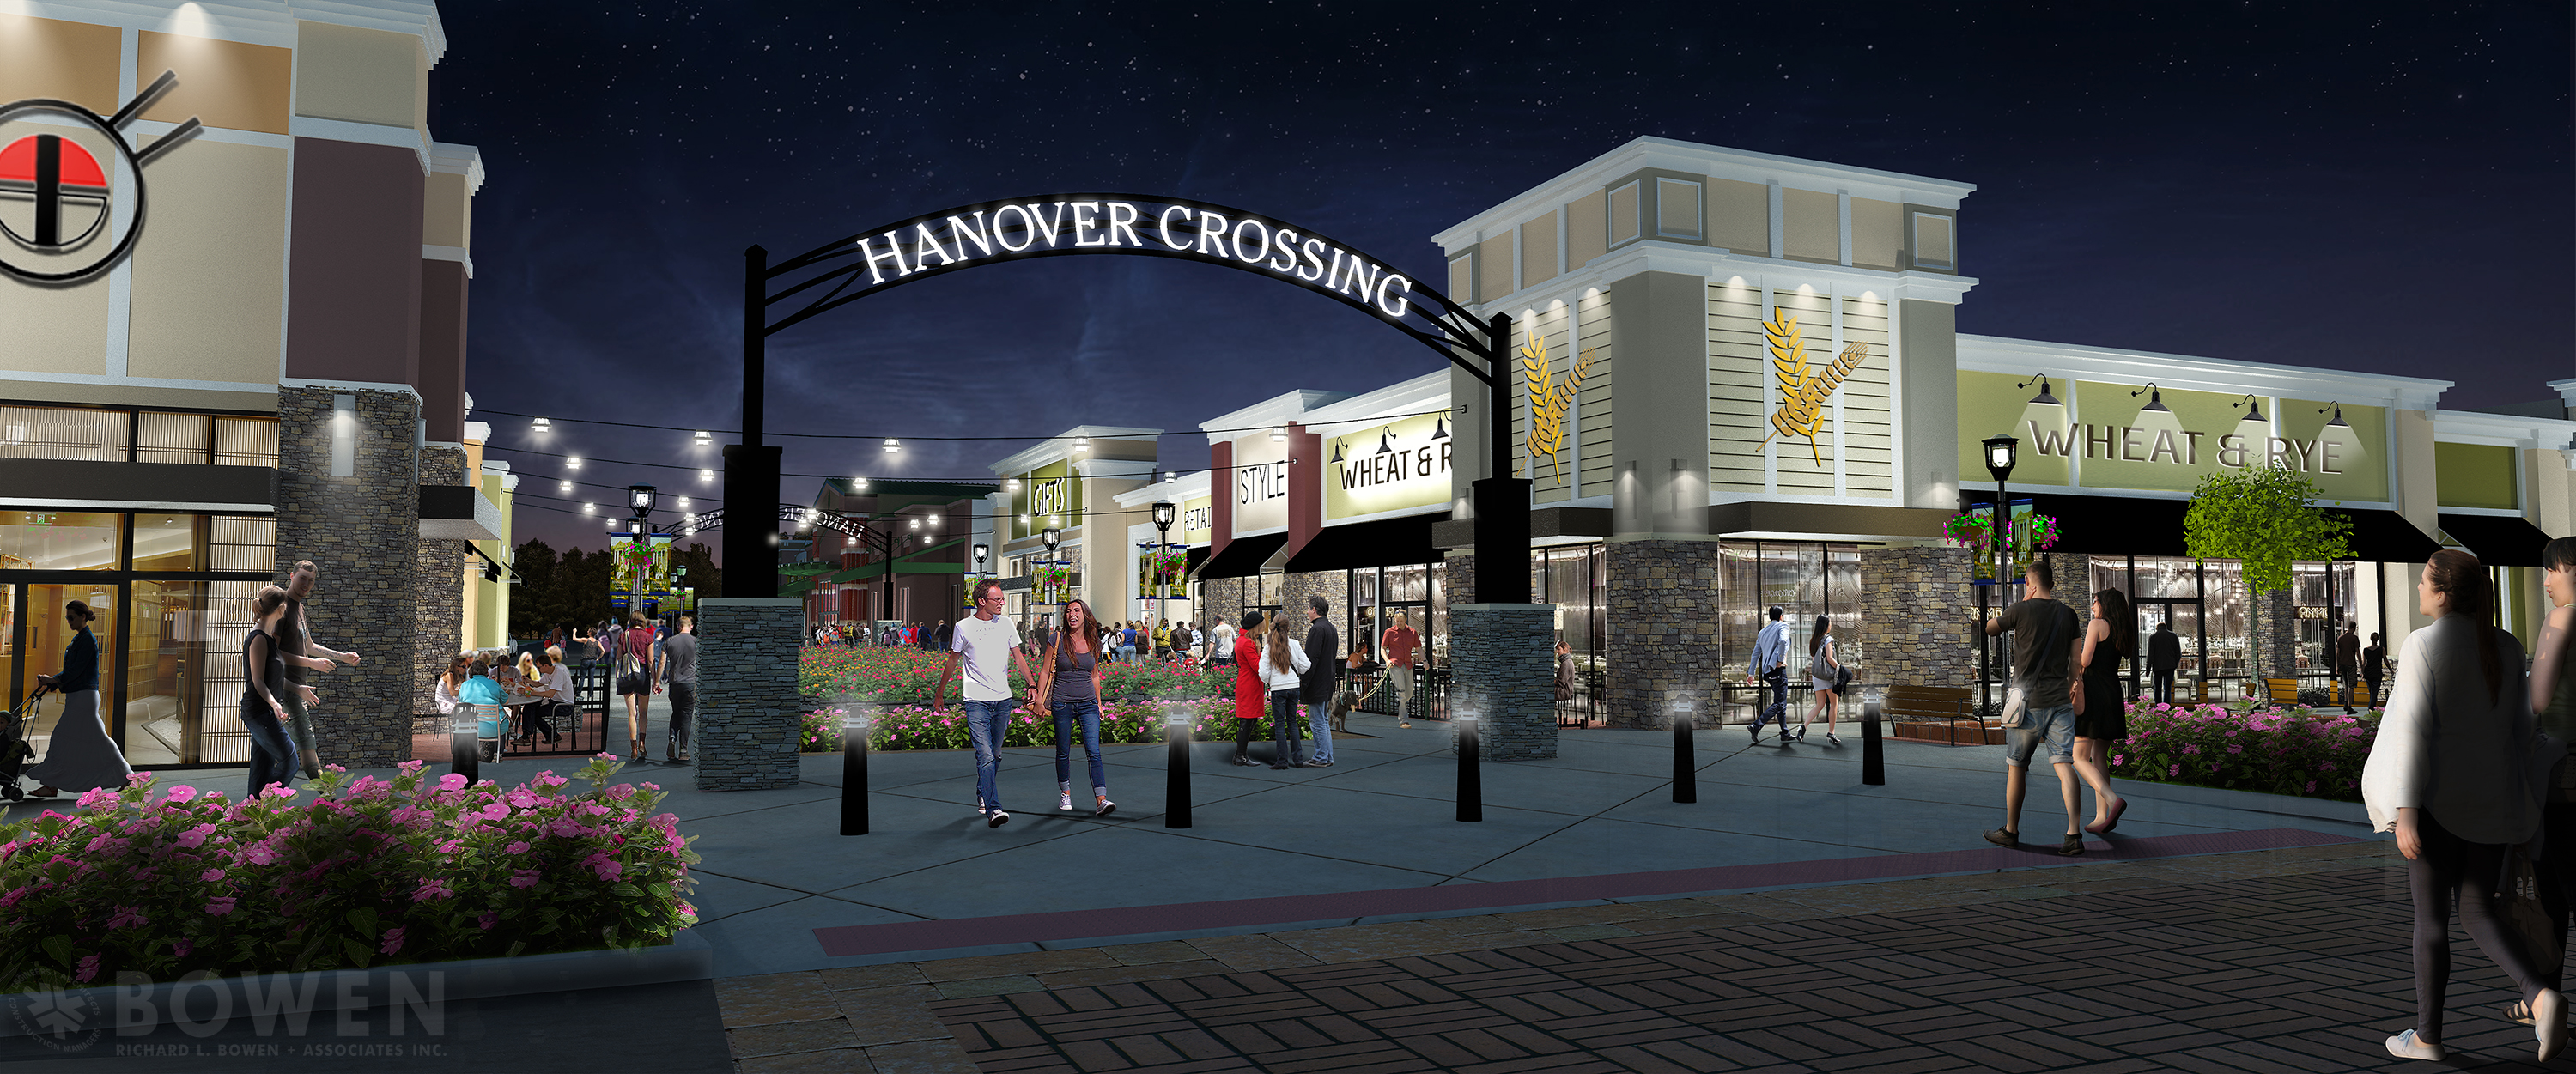 Hanover Crossing Mixed-Use Development Announces New Tenants